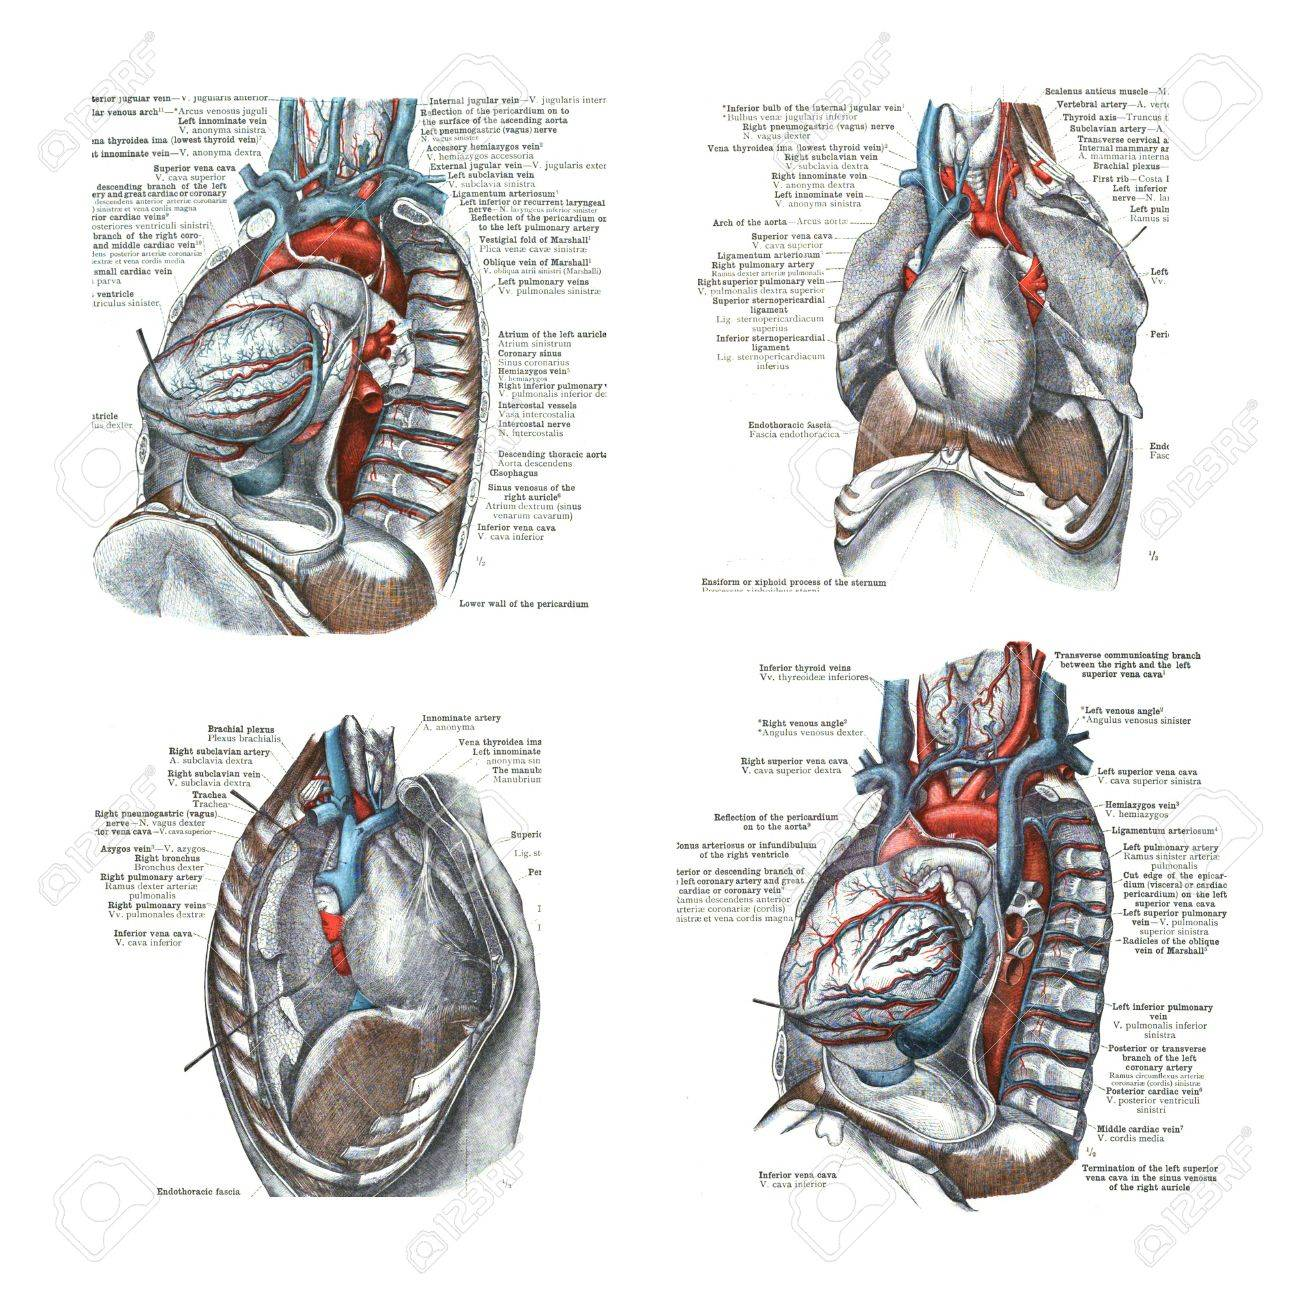 4 Views Of The Heart And Thoracic Cavity From An Atlas Of Human